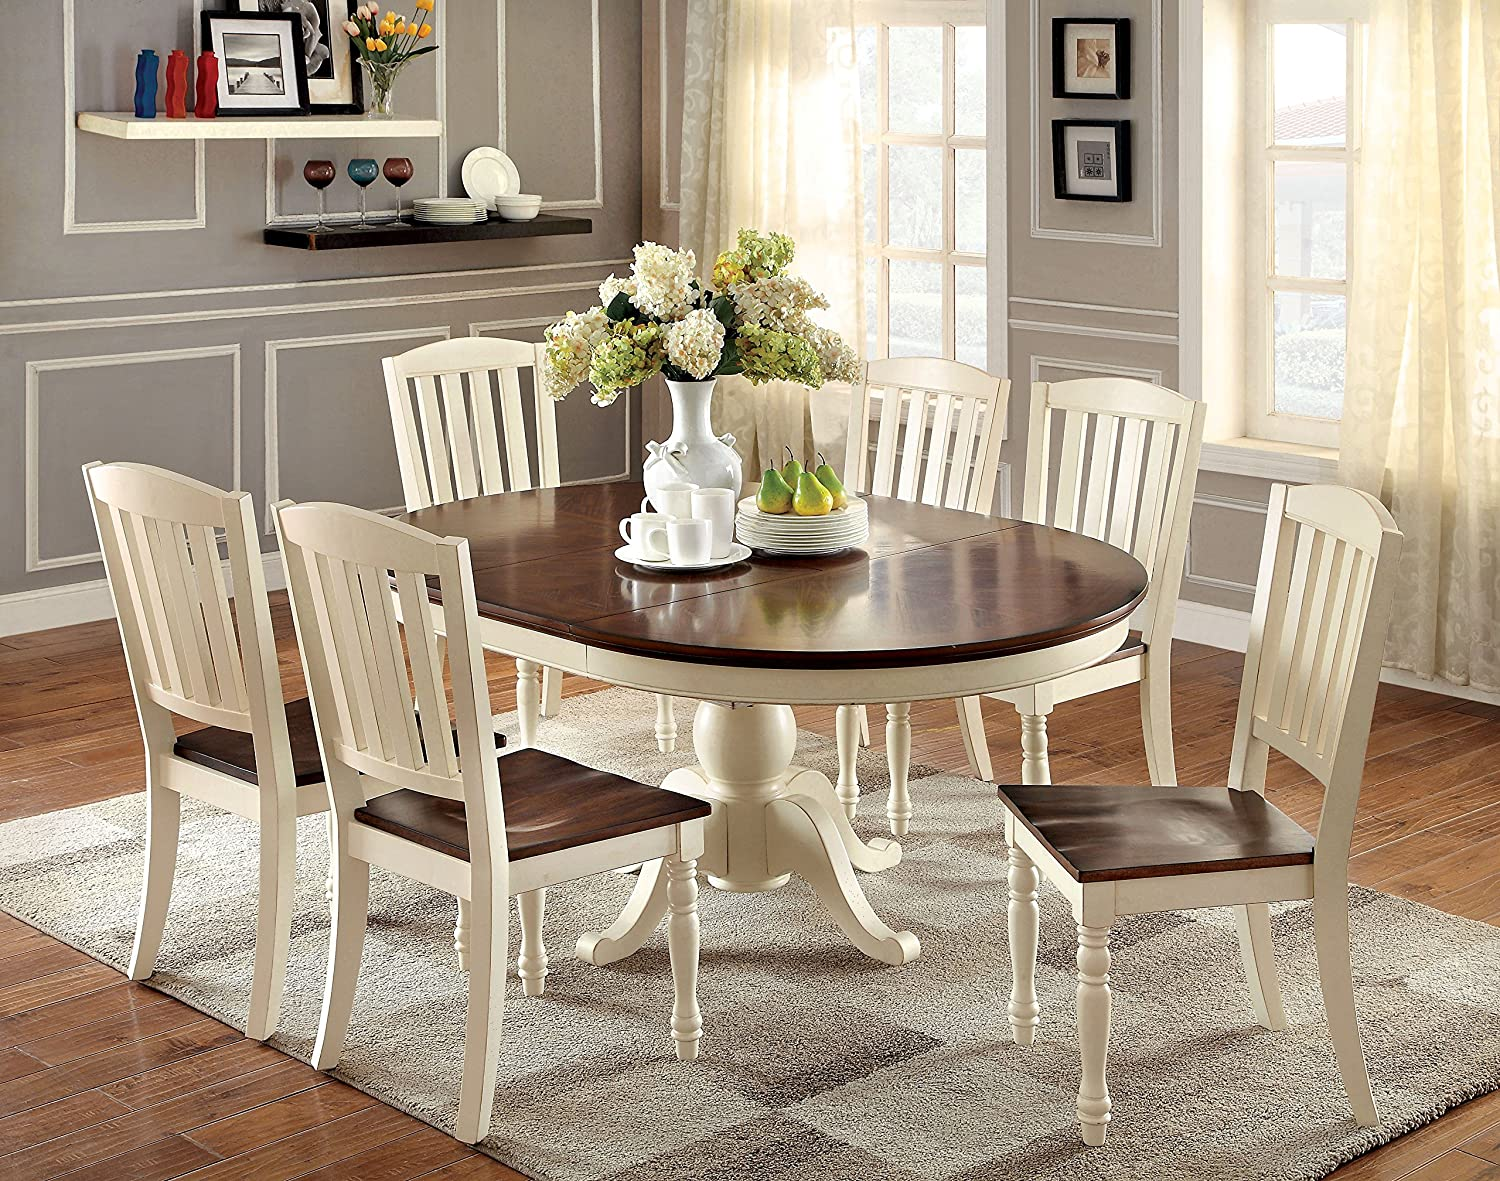 oval dining table home magnolia v products english country